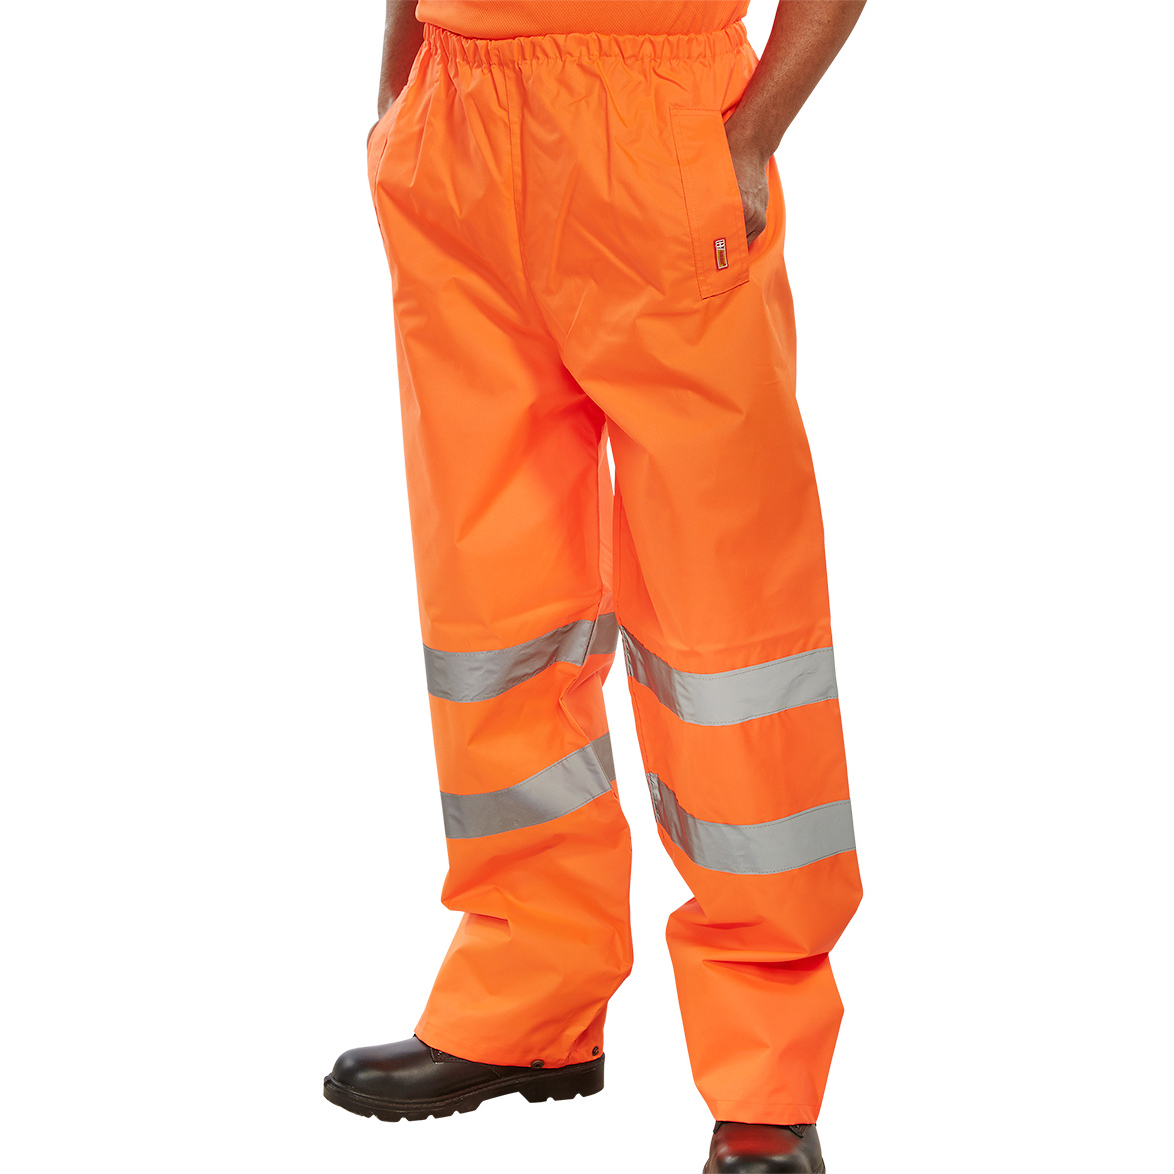 Ladies BSeen Traffic Trousers Hi-Vis Reflective Tape Large Orange Ref TENORL *Up to 3 Day Leadtime*